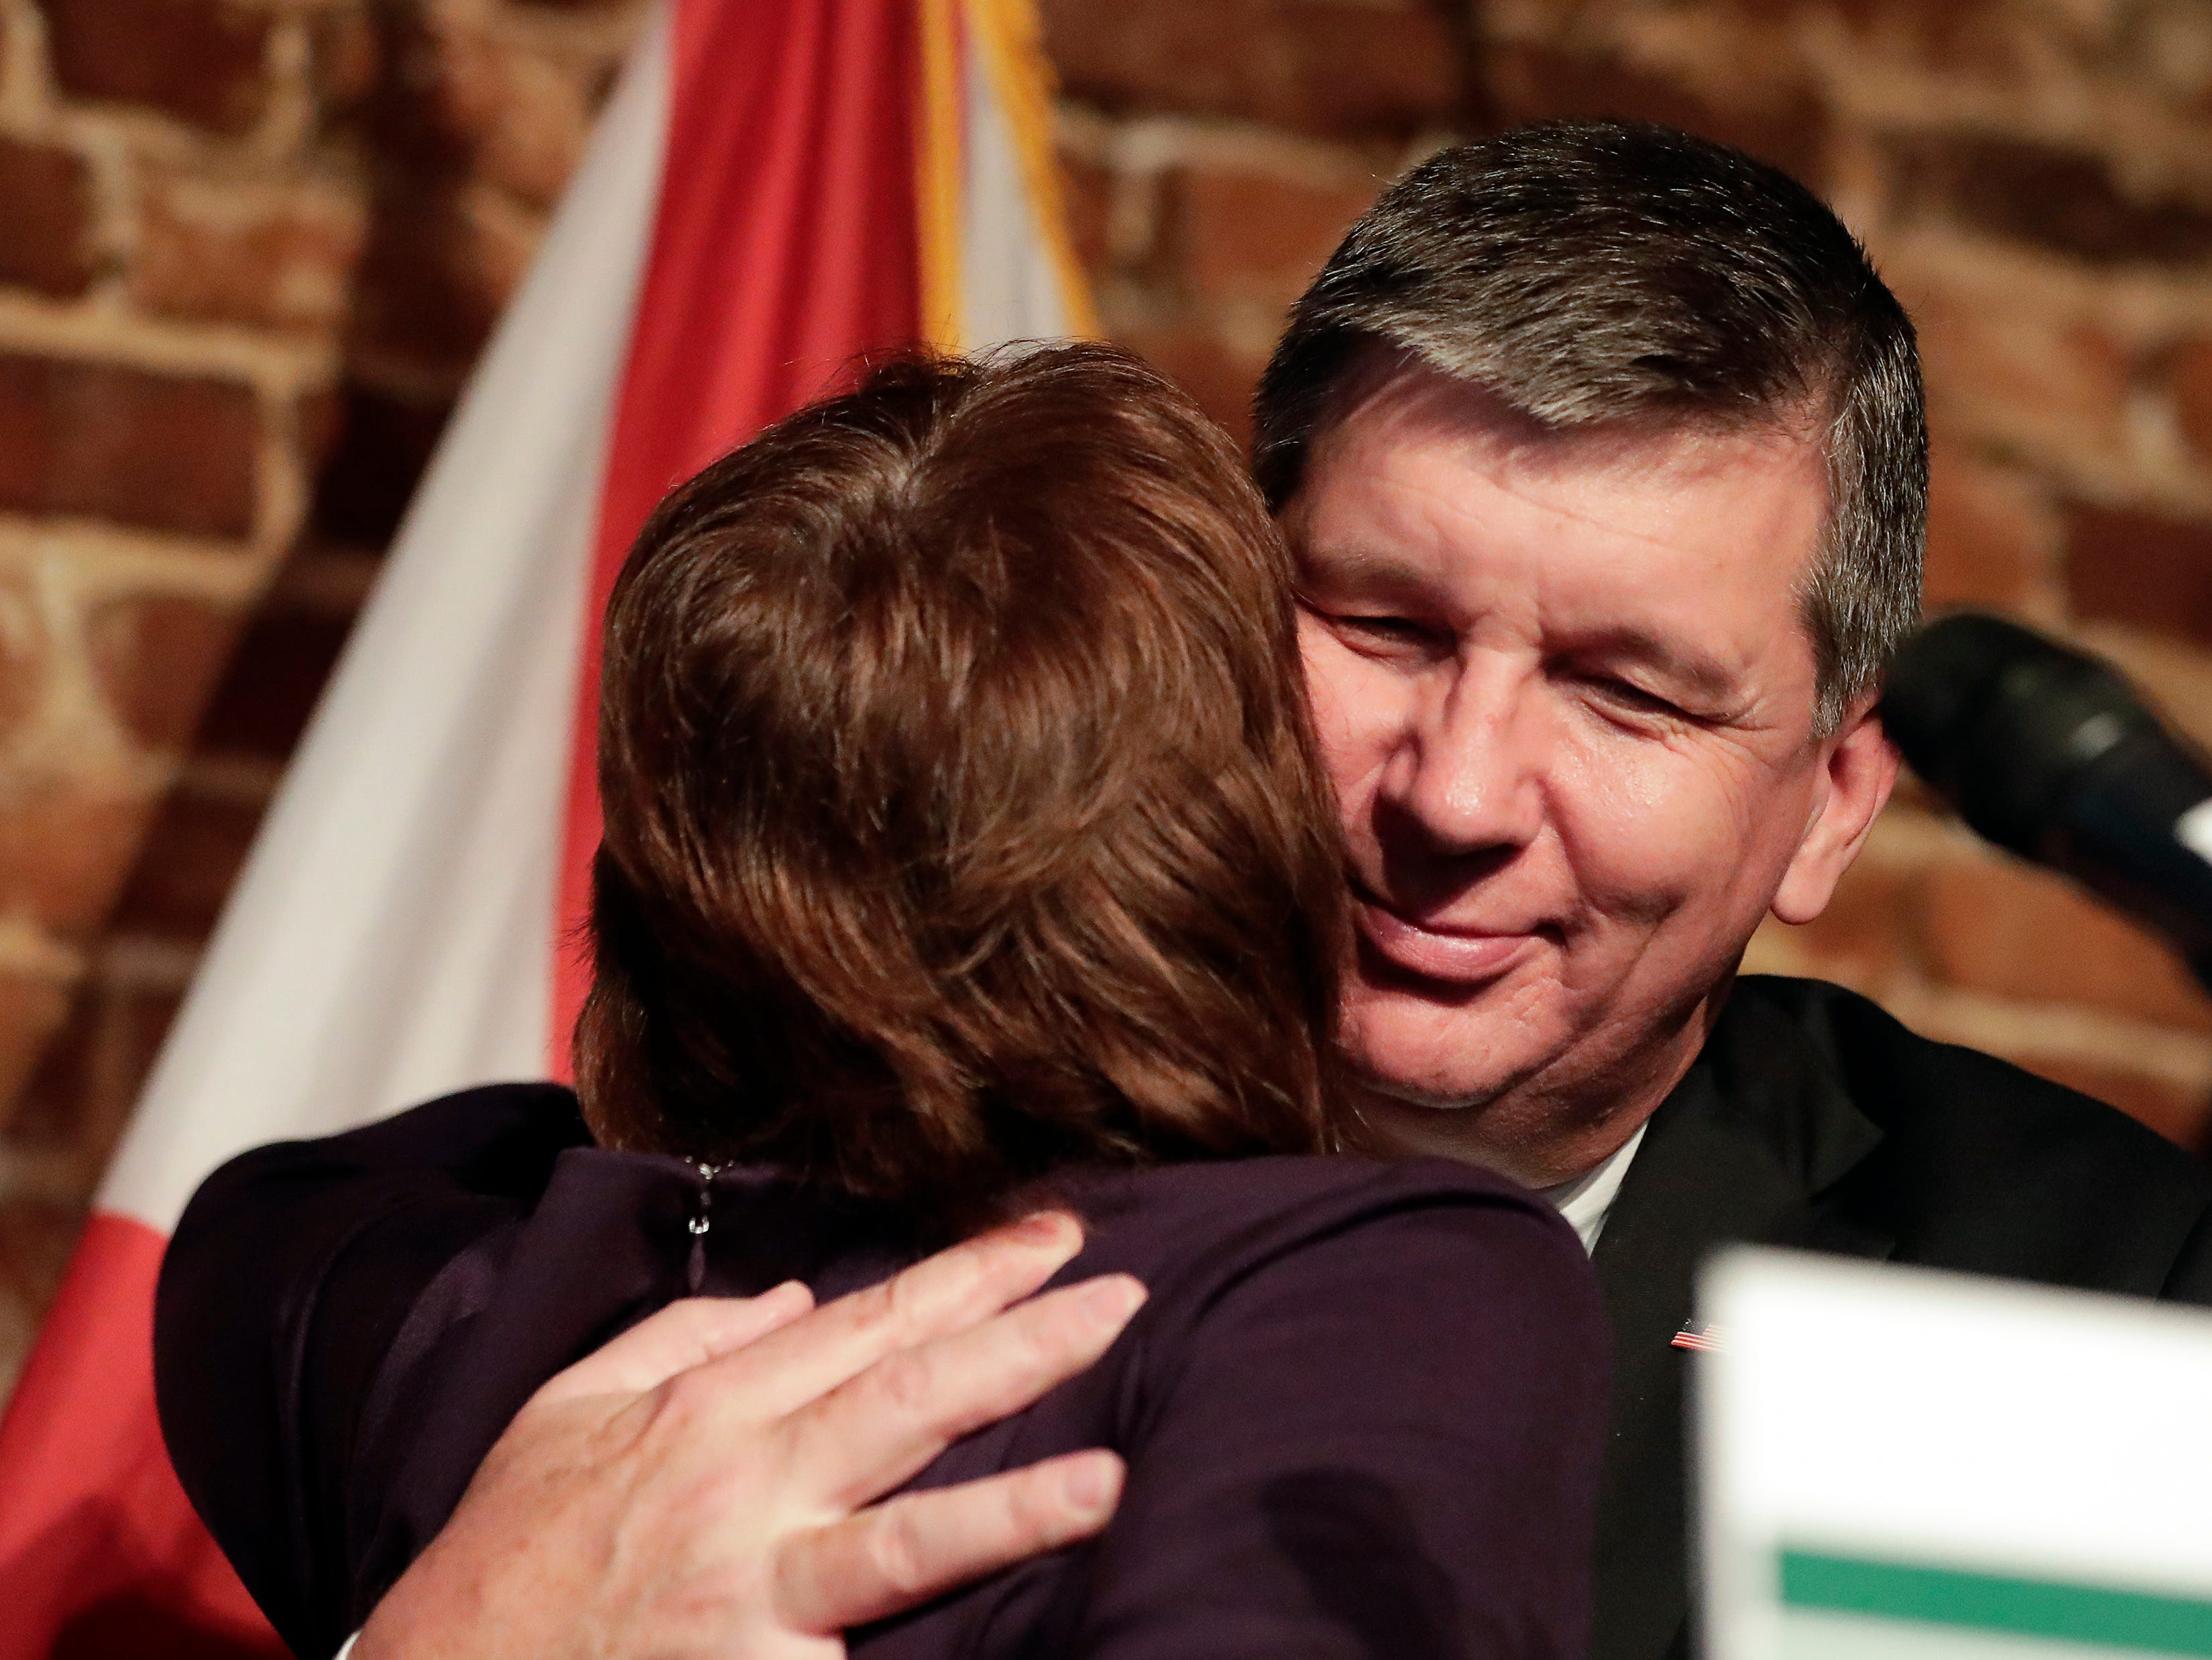 Democratic gubernatorial candidate Gwen Graham, left, gets a hug from her husband Stephen Hurm after she gave her concession speech at a primary election night party Tuesday, Aug. 28, 2018, in Orlando, Fla. Andrew Gillum won the Democratic primary and will go on to face Republican Ron DeSantis in November. (AP Photo/John Raoux)